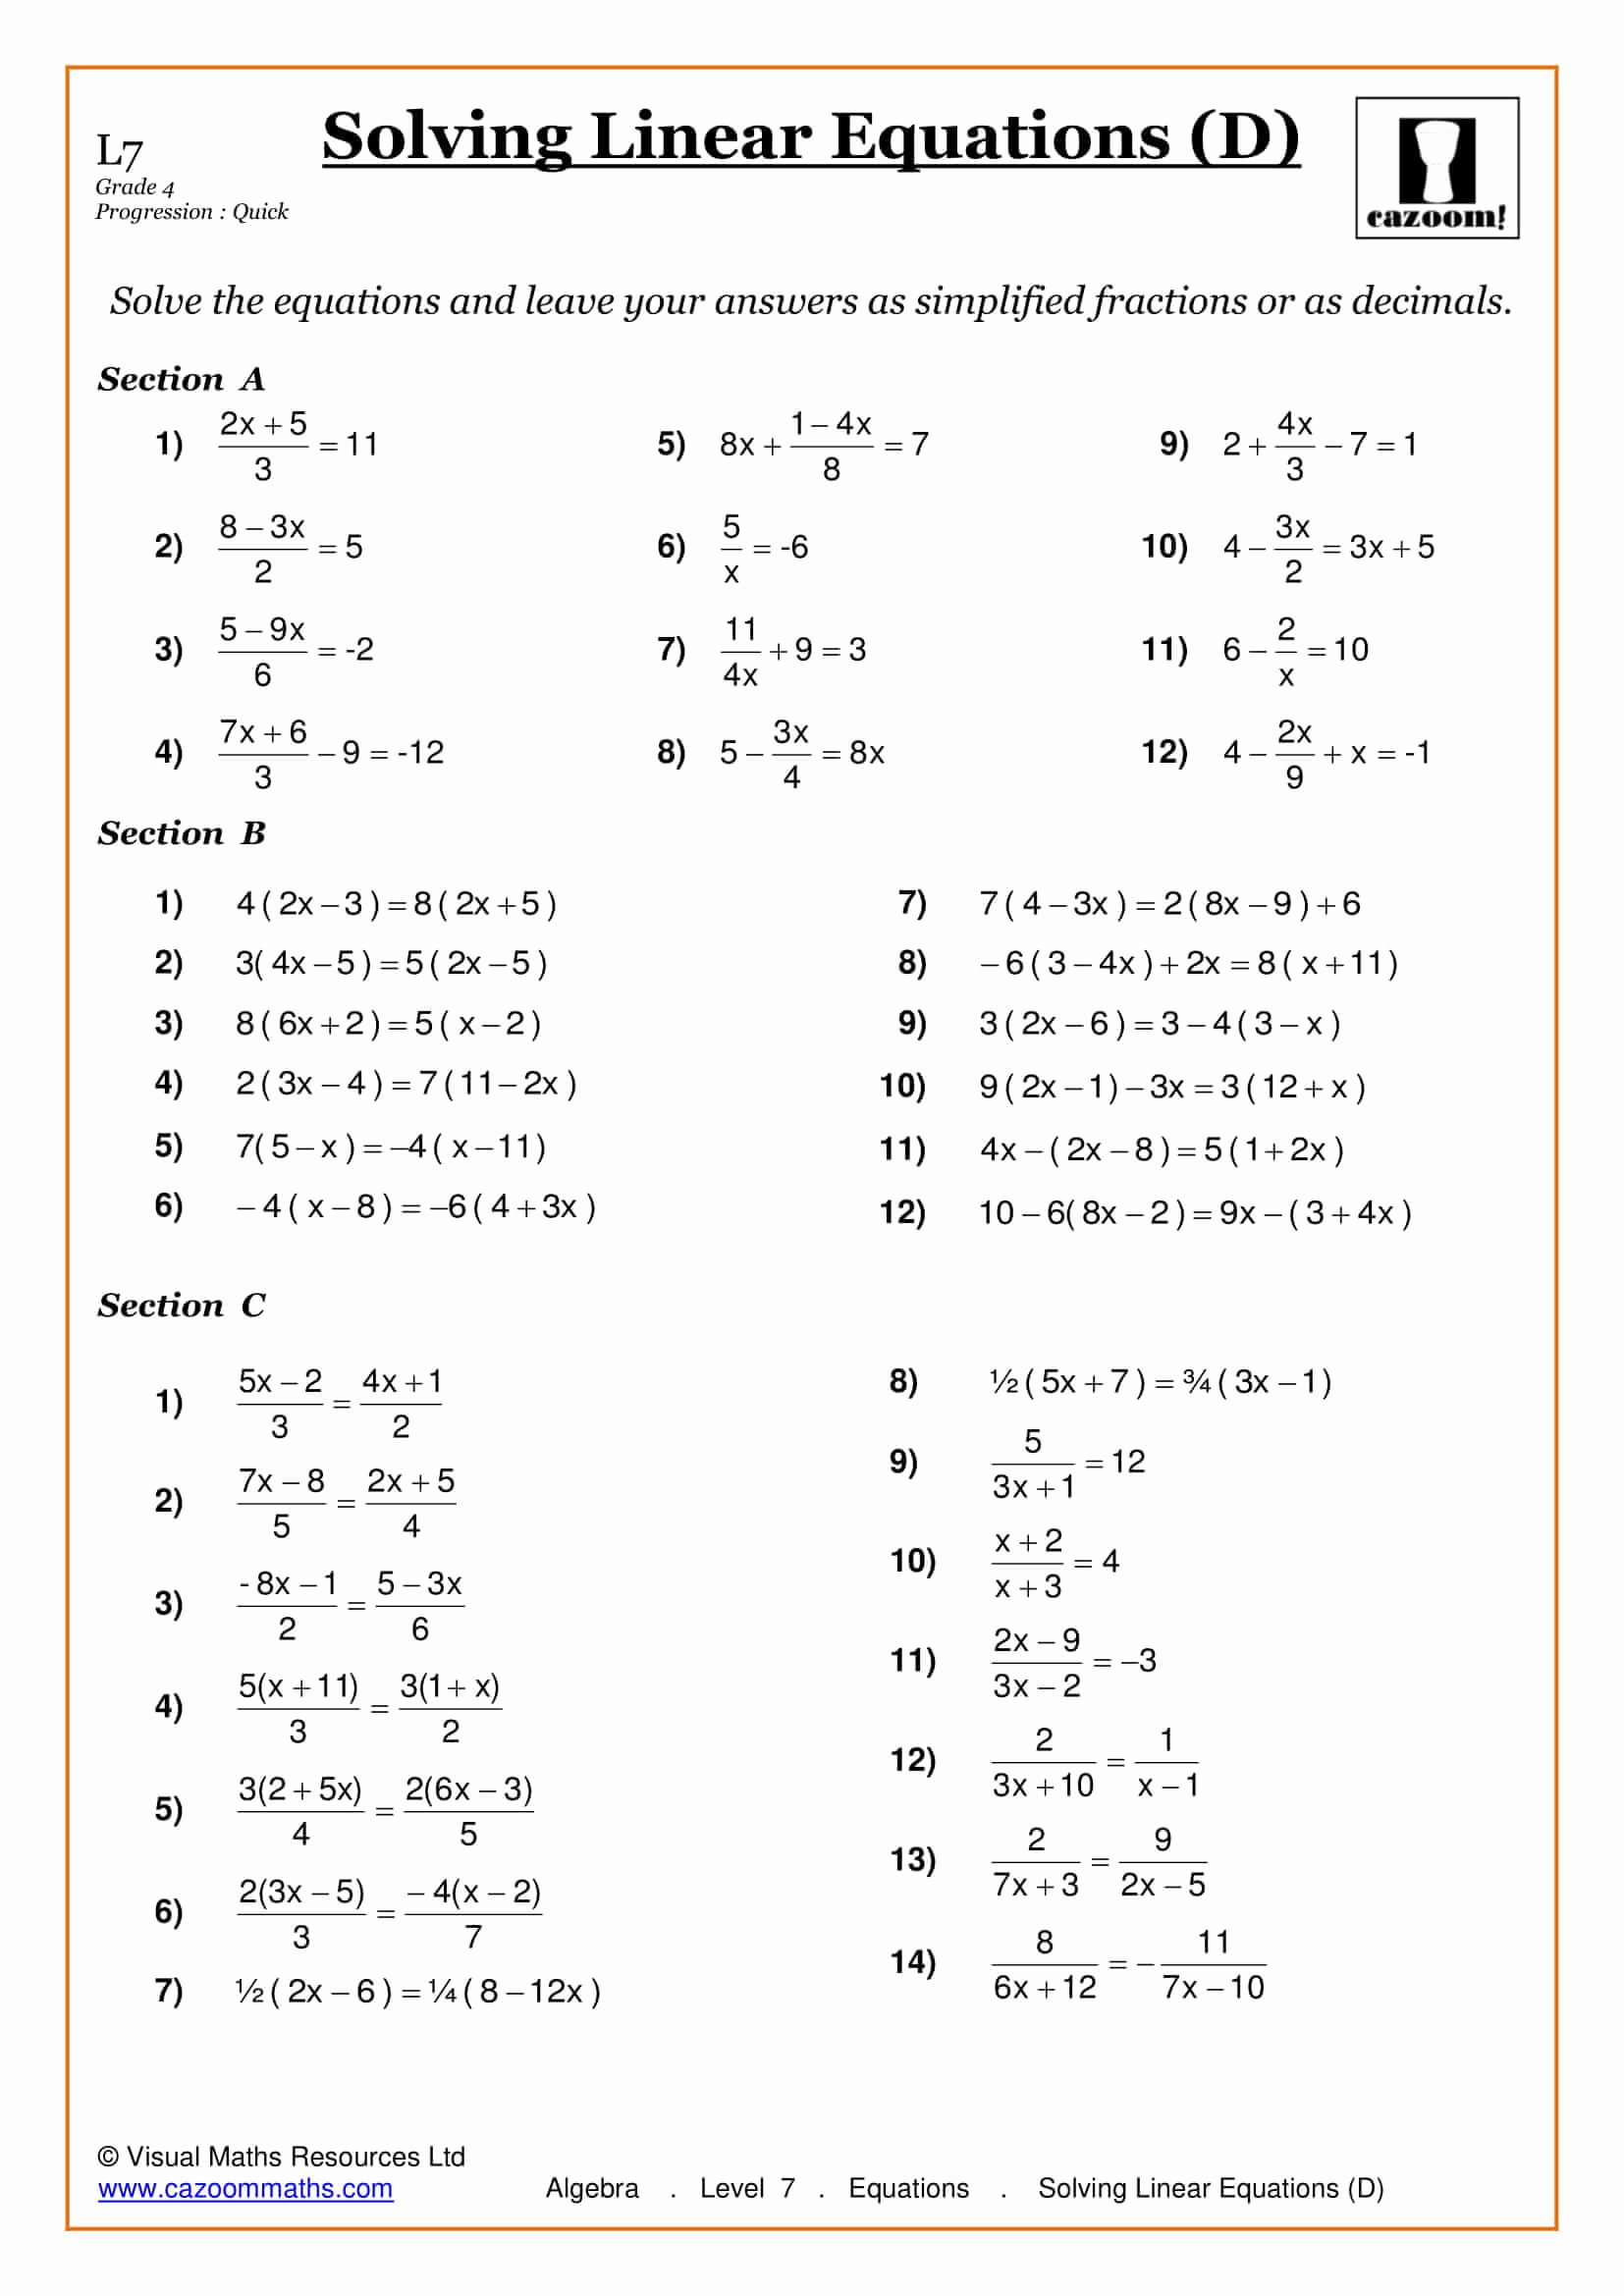 Solving Linear Equations Worksheet Pdf Lovely Maths Worksheets